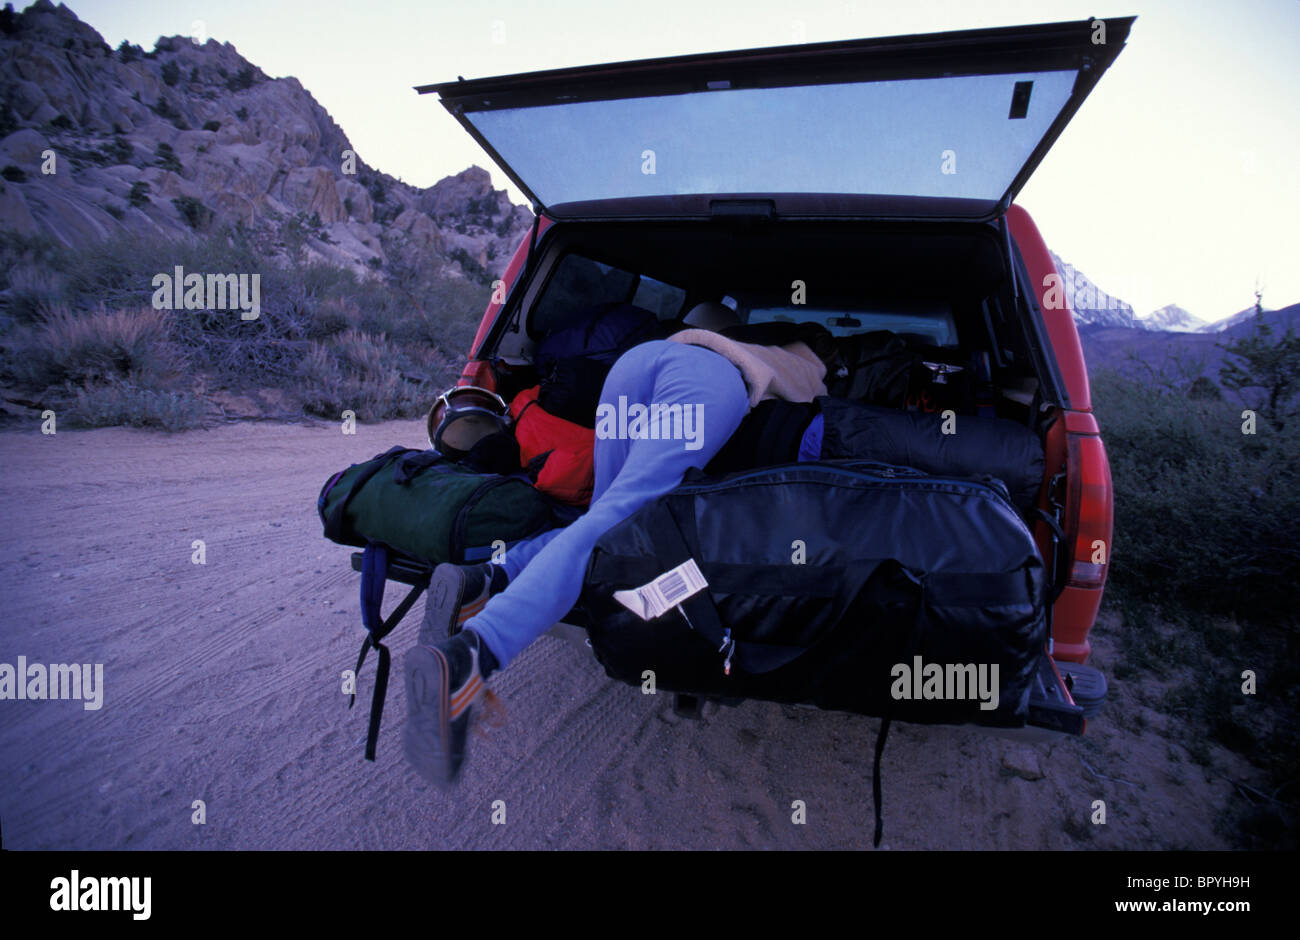 ff370c27 A woman searches for an item in her car, which is packed with duffel bags